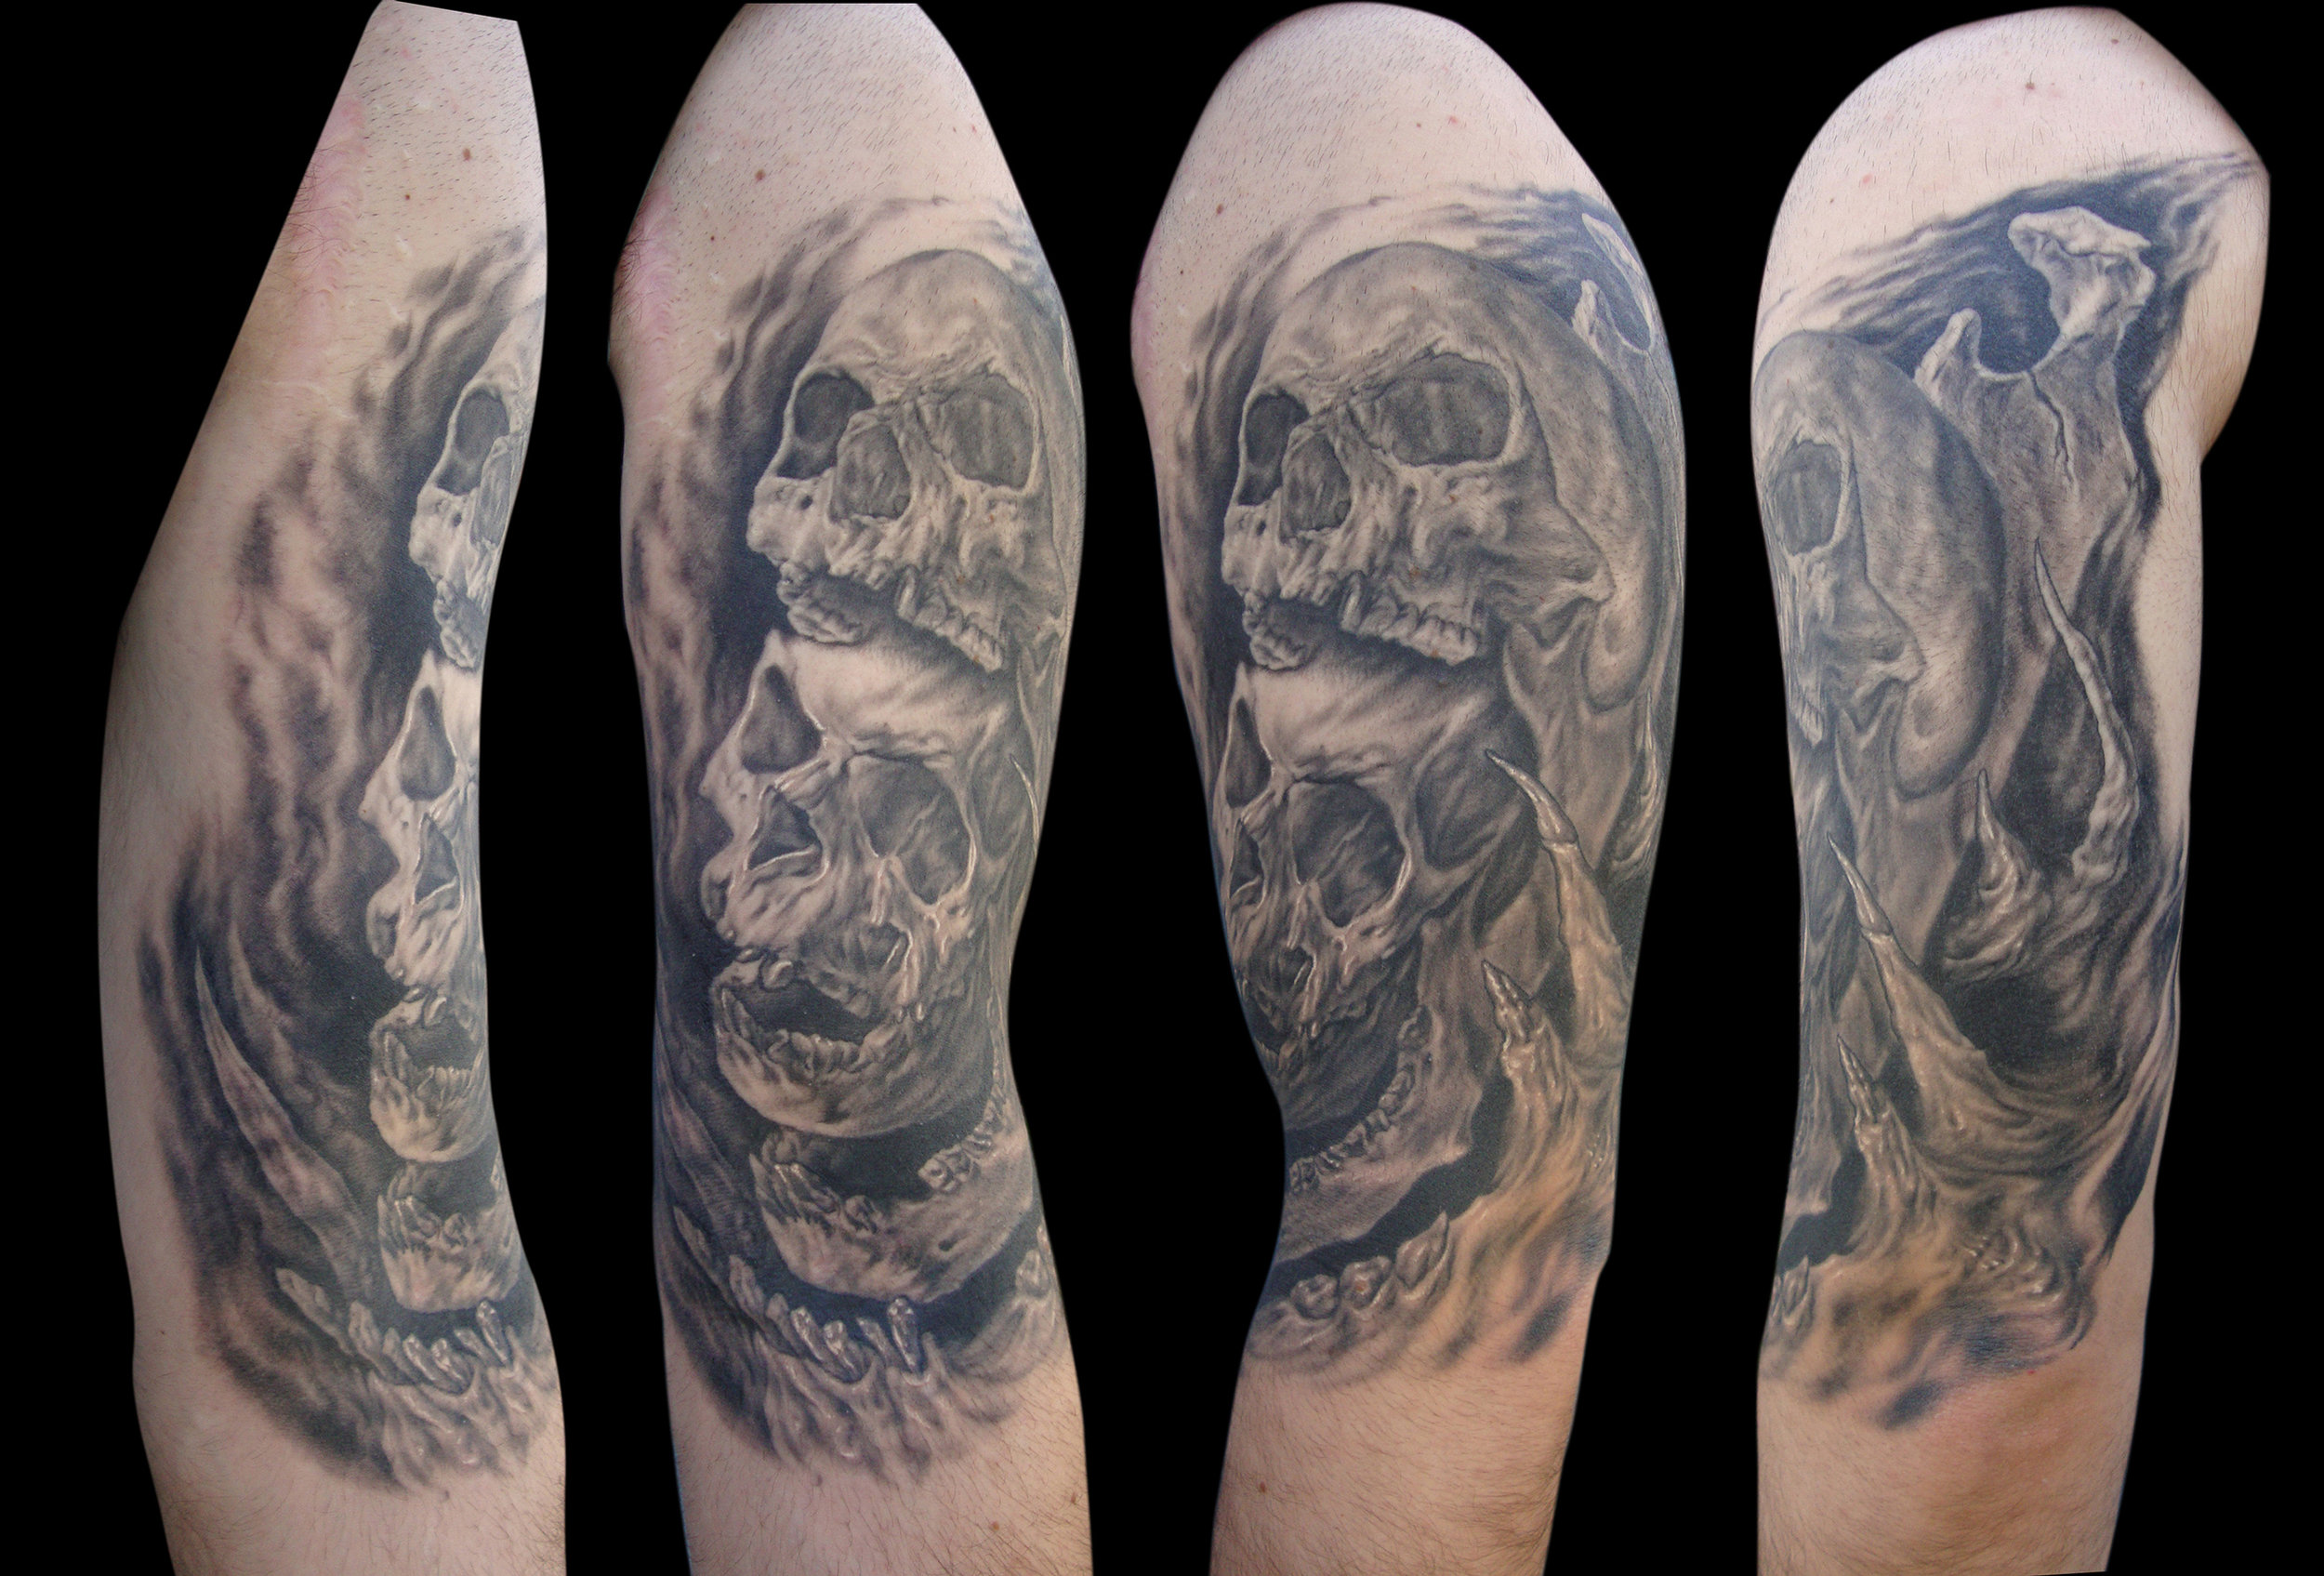 Black and Grey Surreal Multi Skull Overlay Upper Arm Tattoo, (healed) alternate angle photos